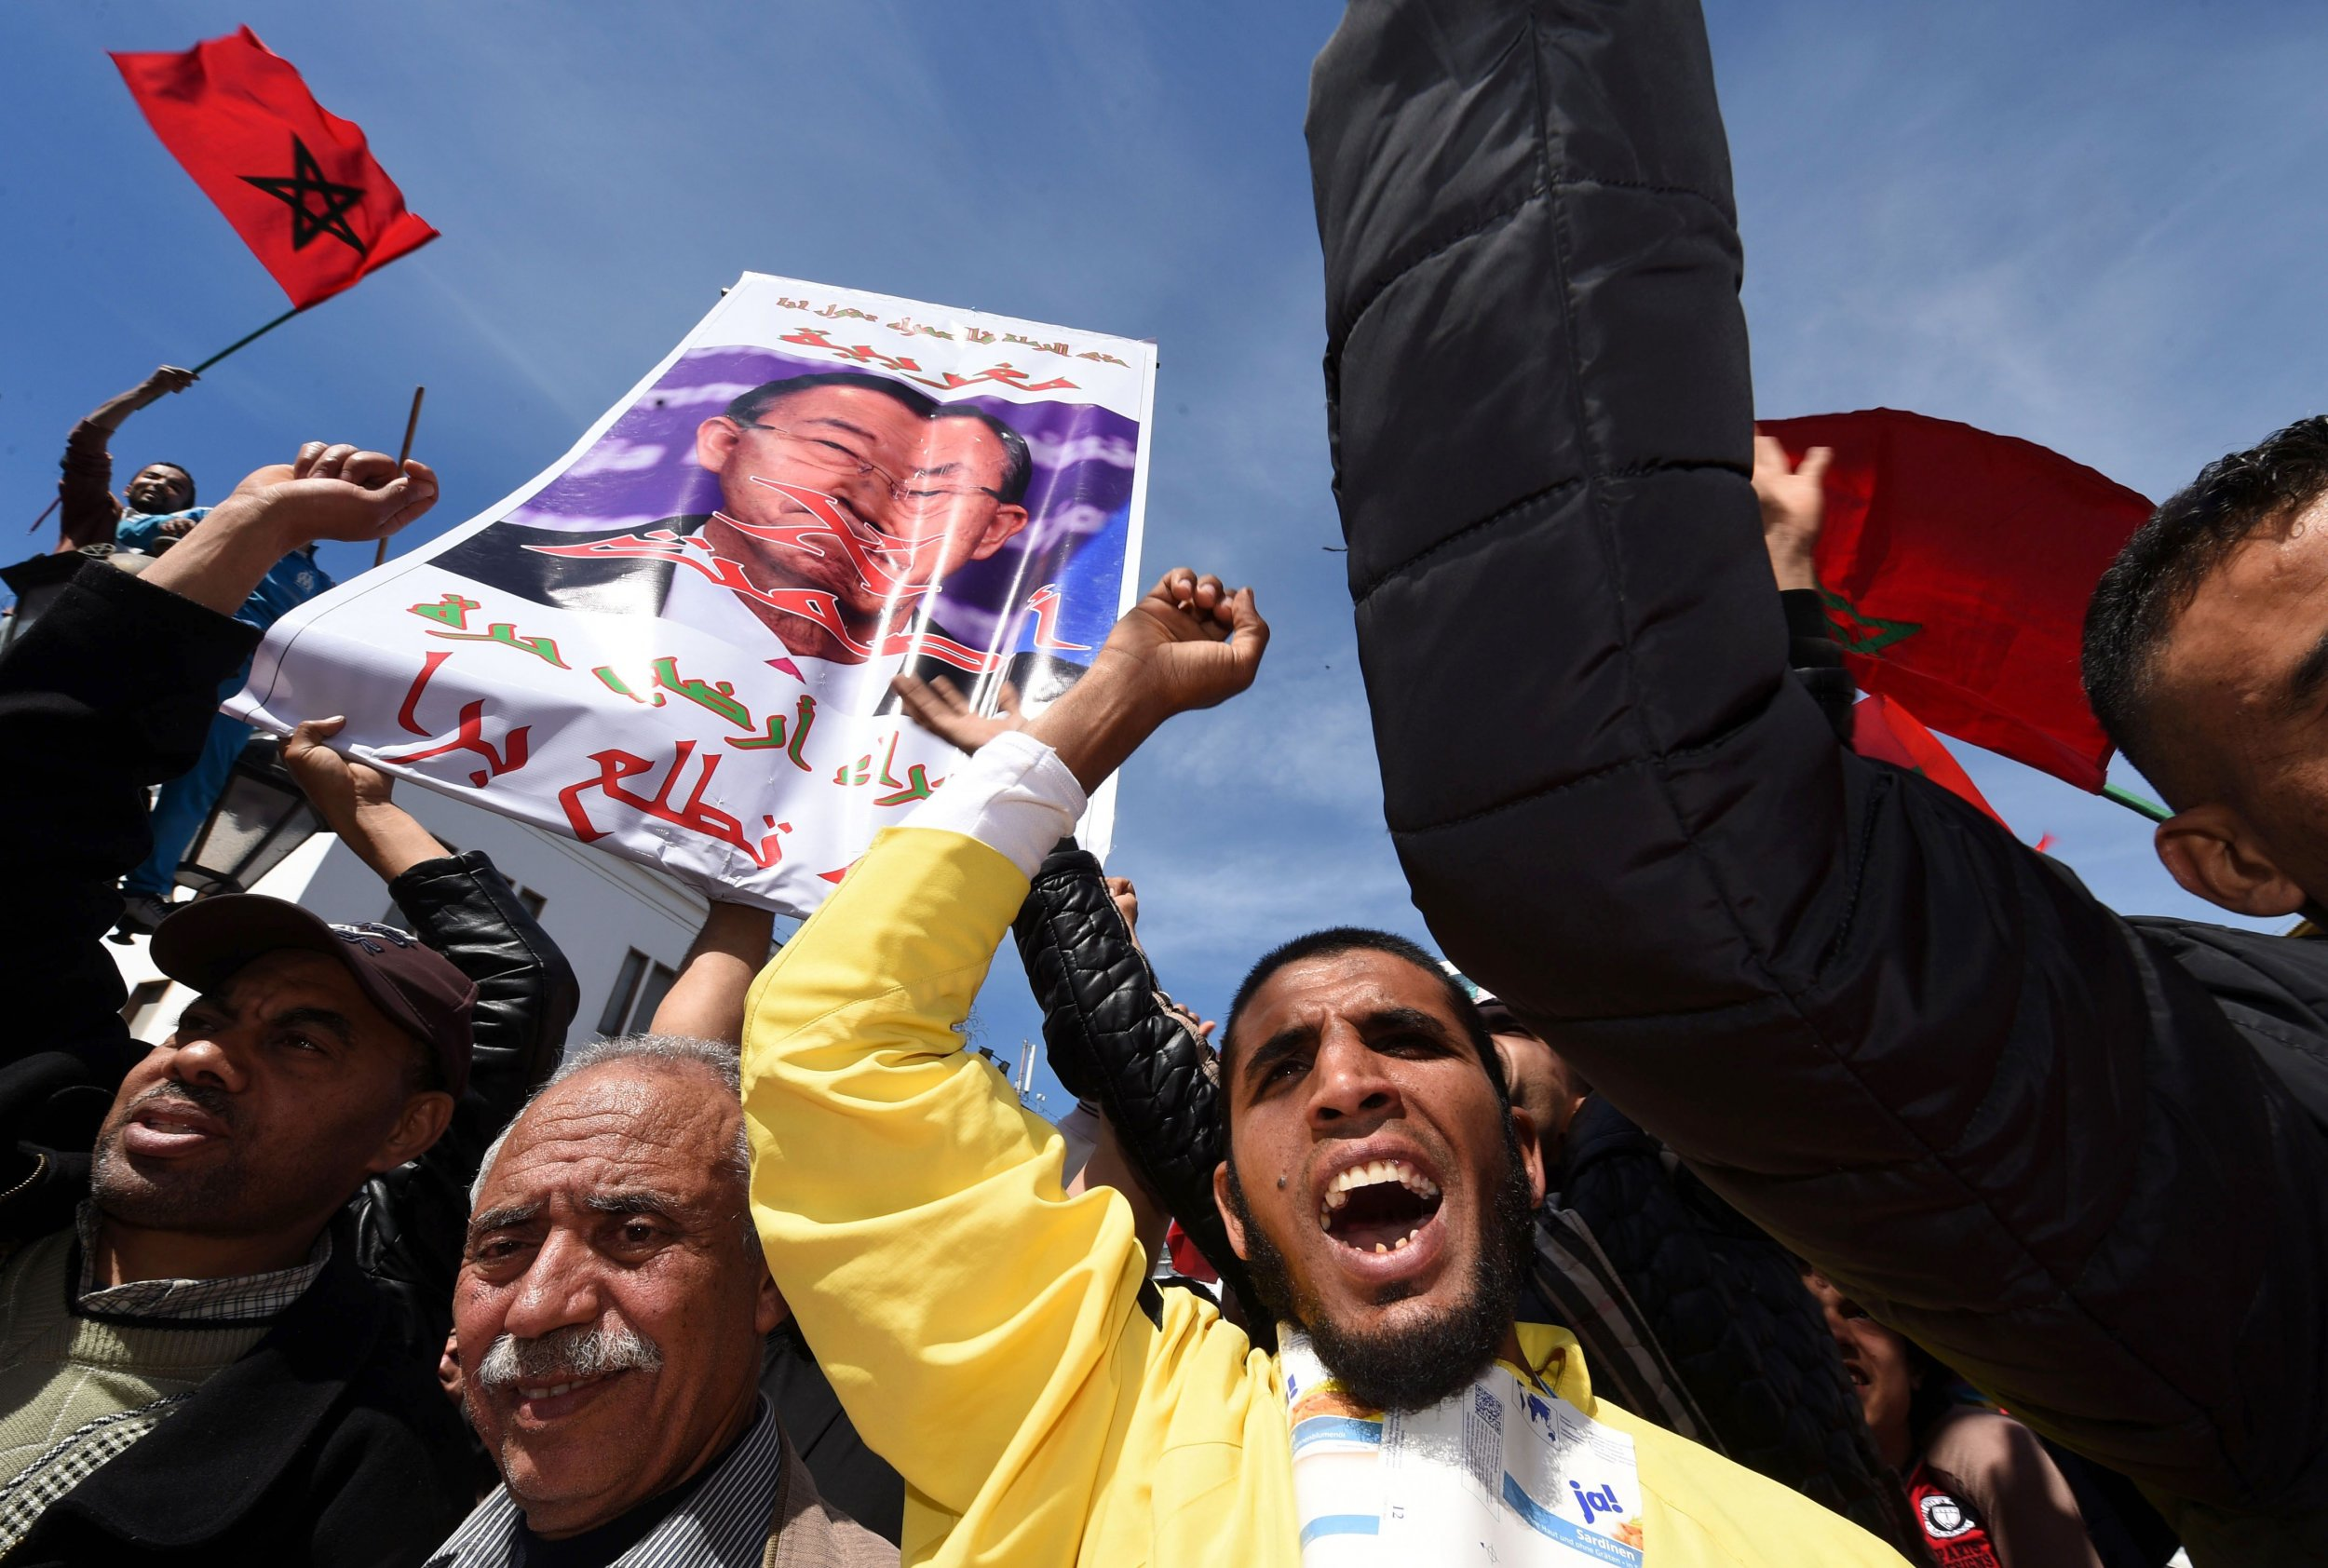 Moroccan protesters demonstrate against Ban Ki-moon's comments about Western Sahara.